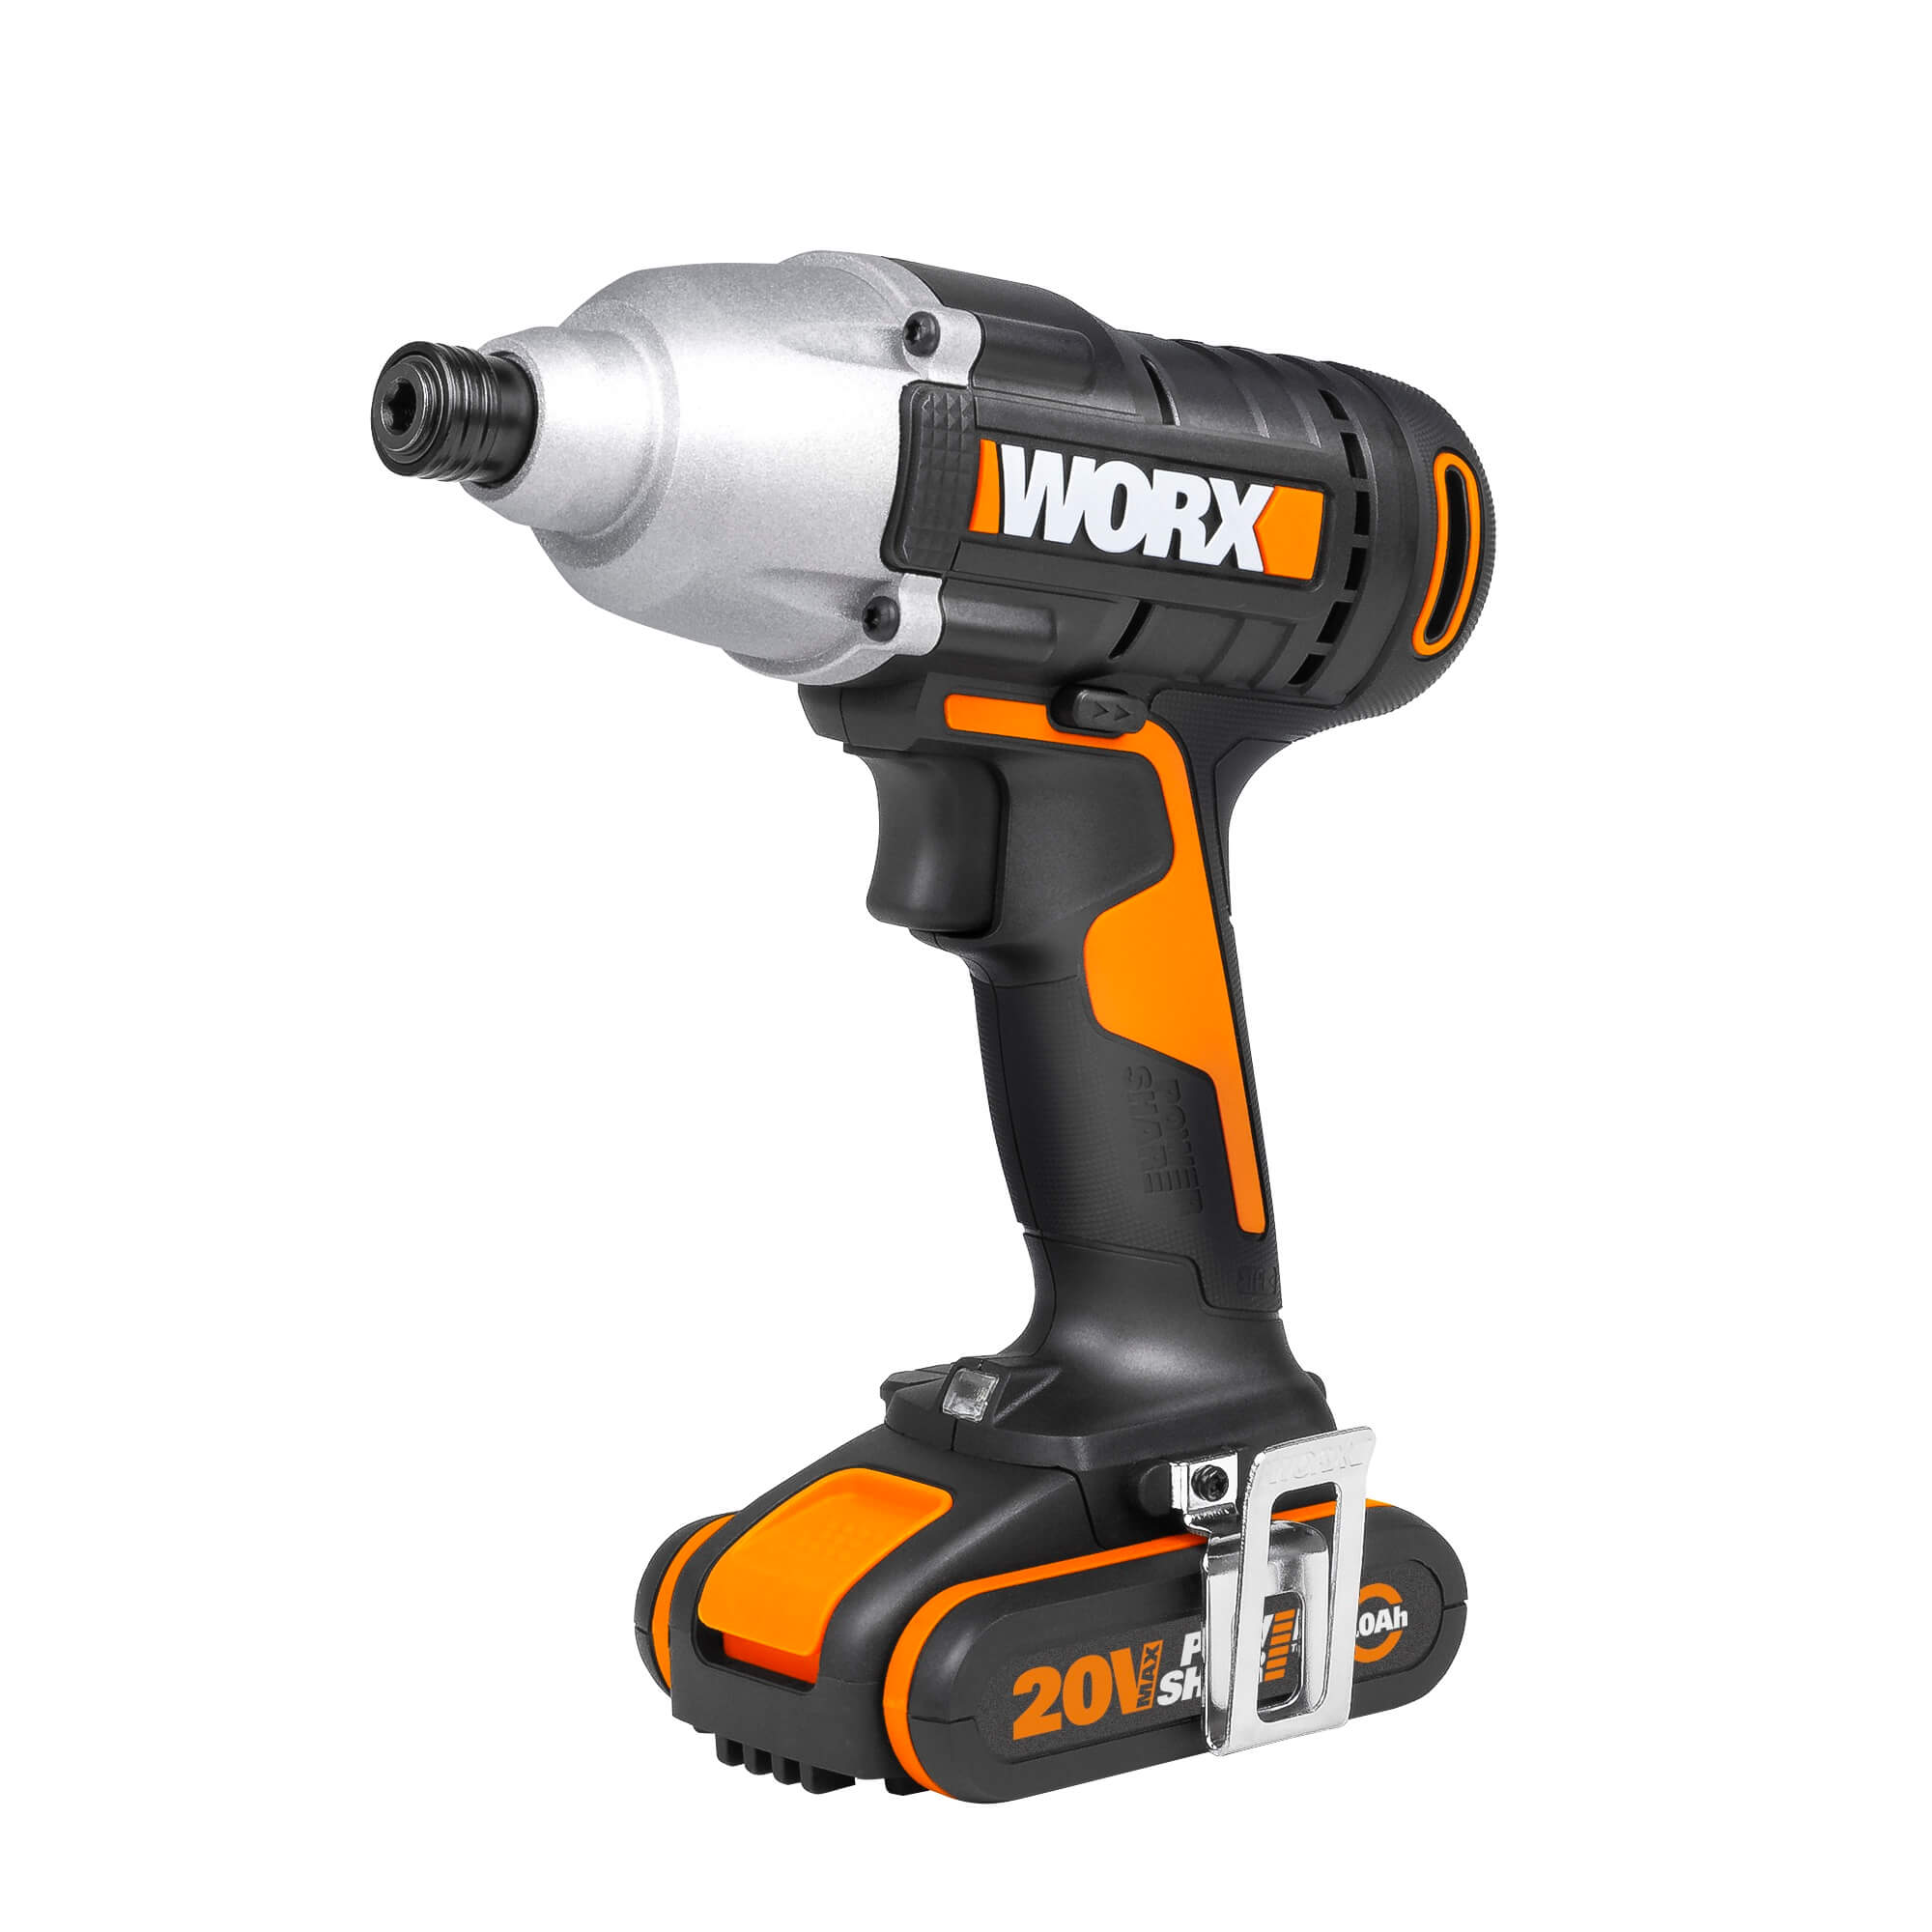 Worx Impact Driver and Wrench